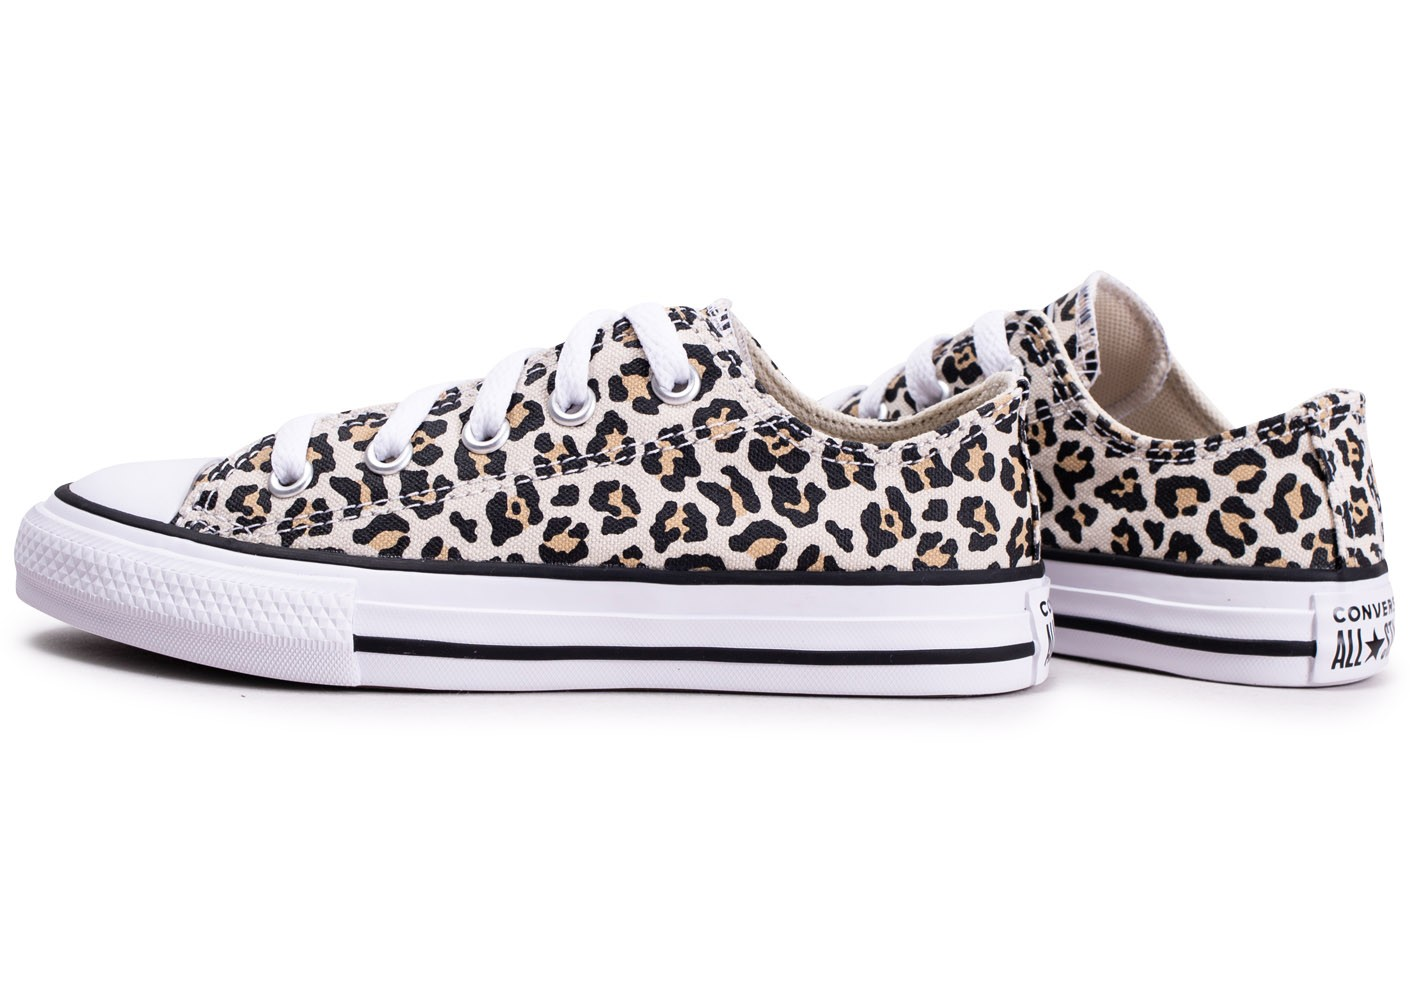 converse all star leopard